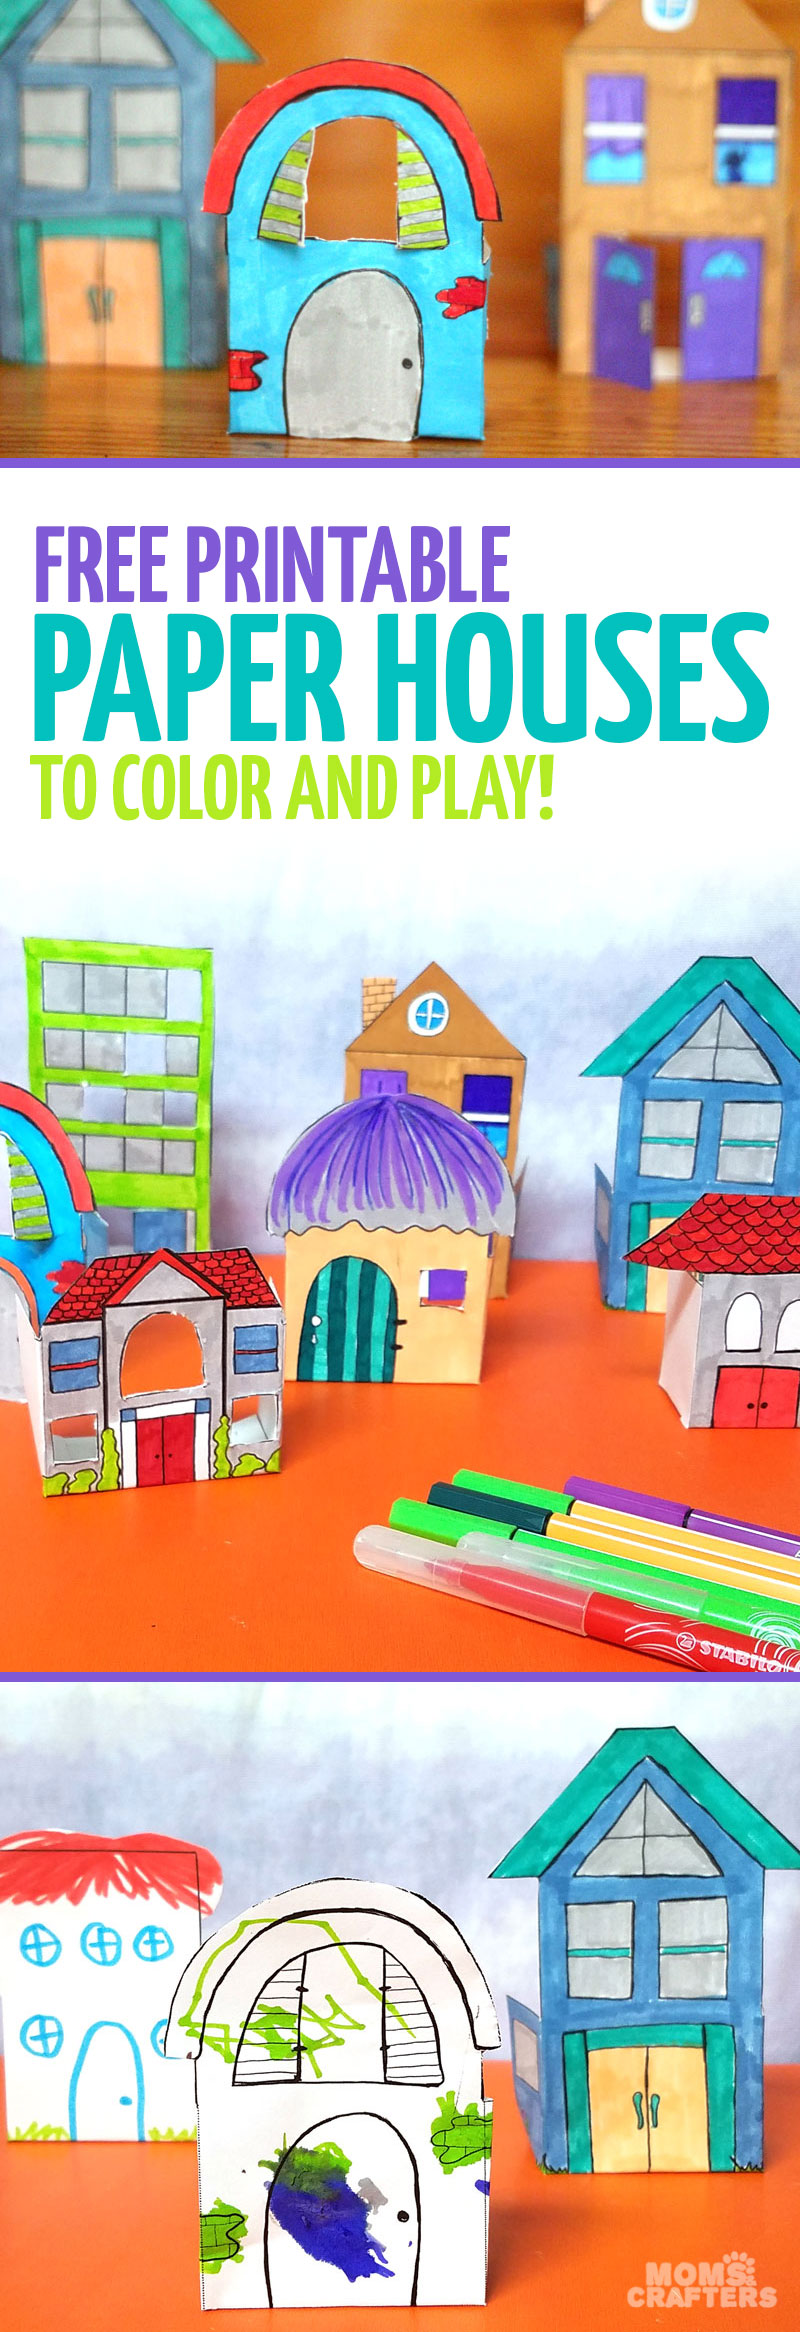 print and color these fun paper houses and then play with them this color - Colored Paper Printable